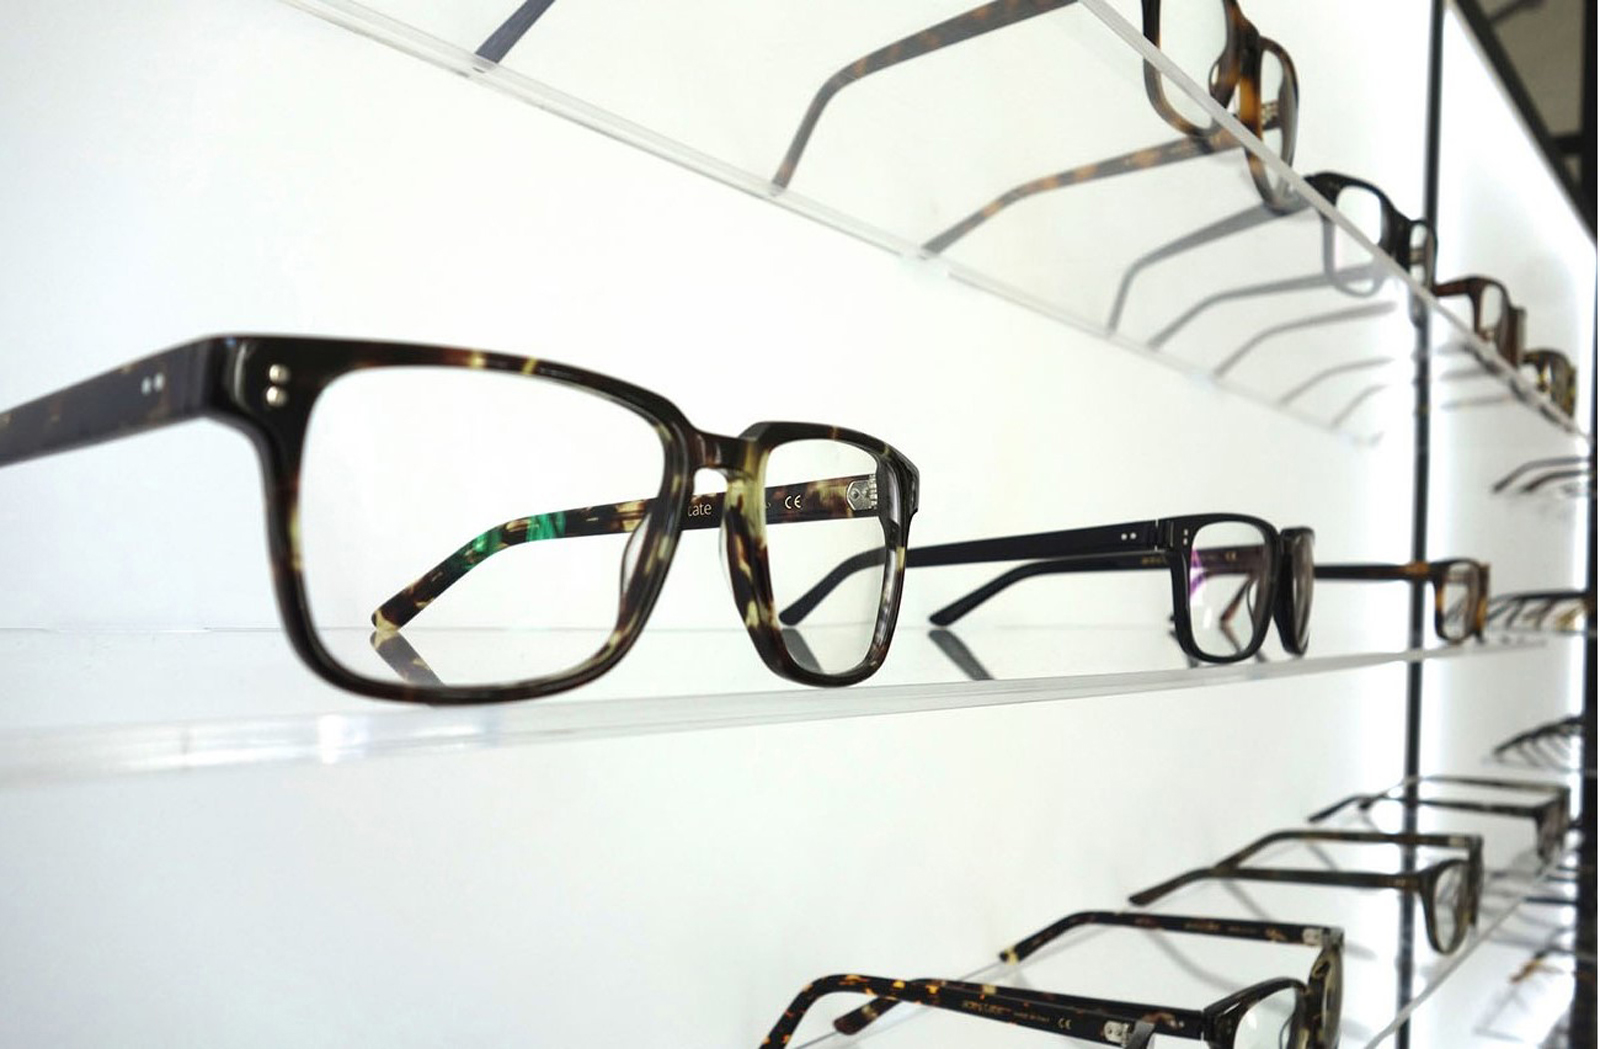 Arlington optometrist eyeglasses